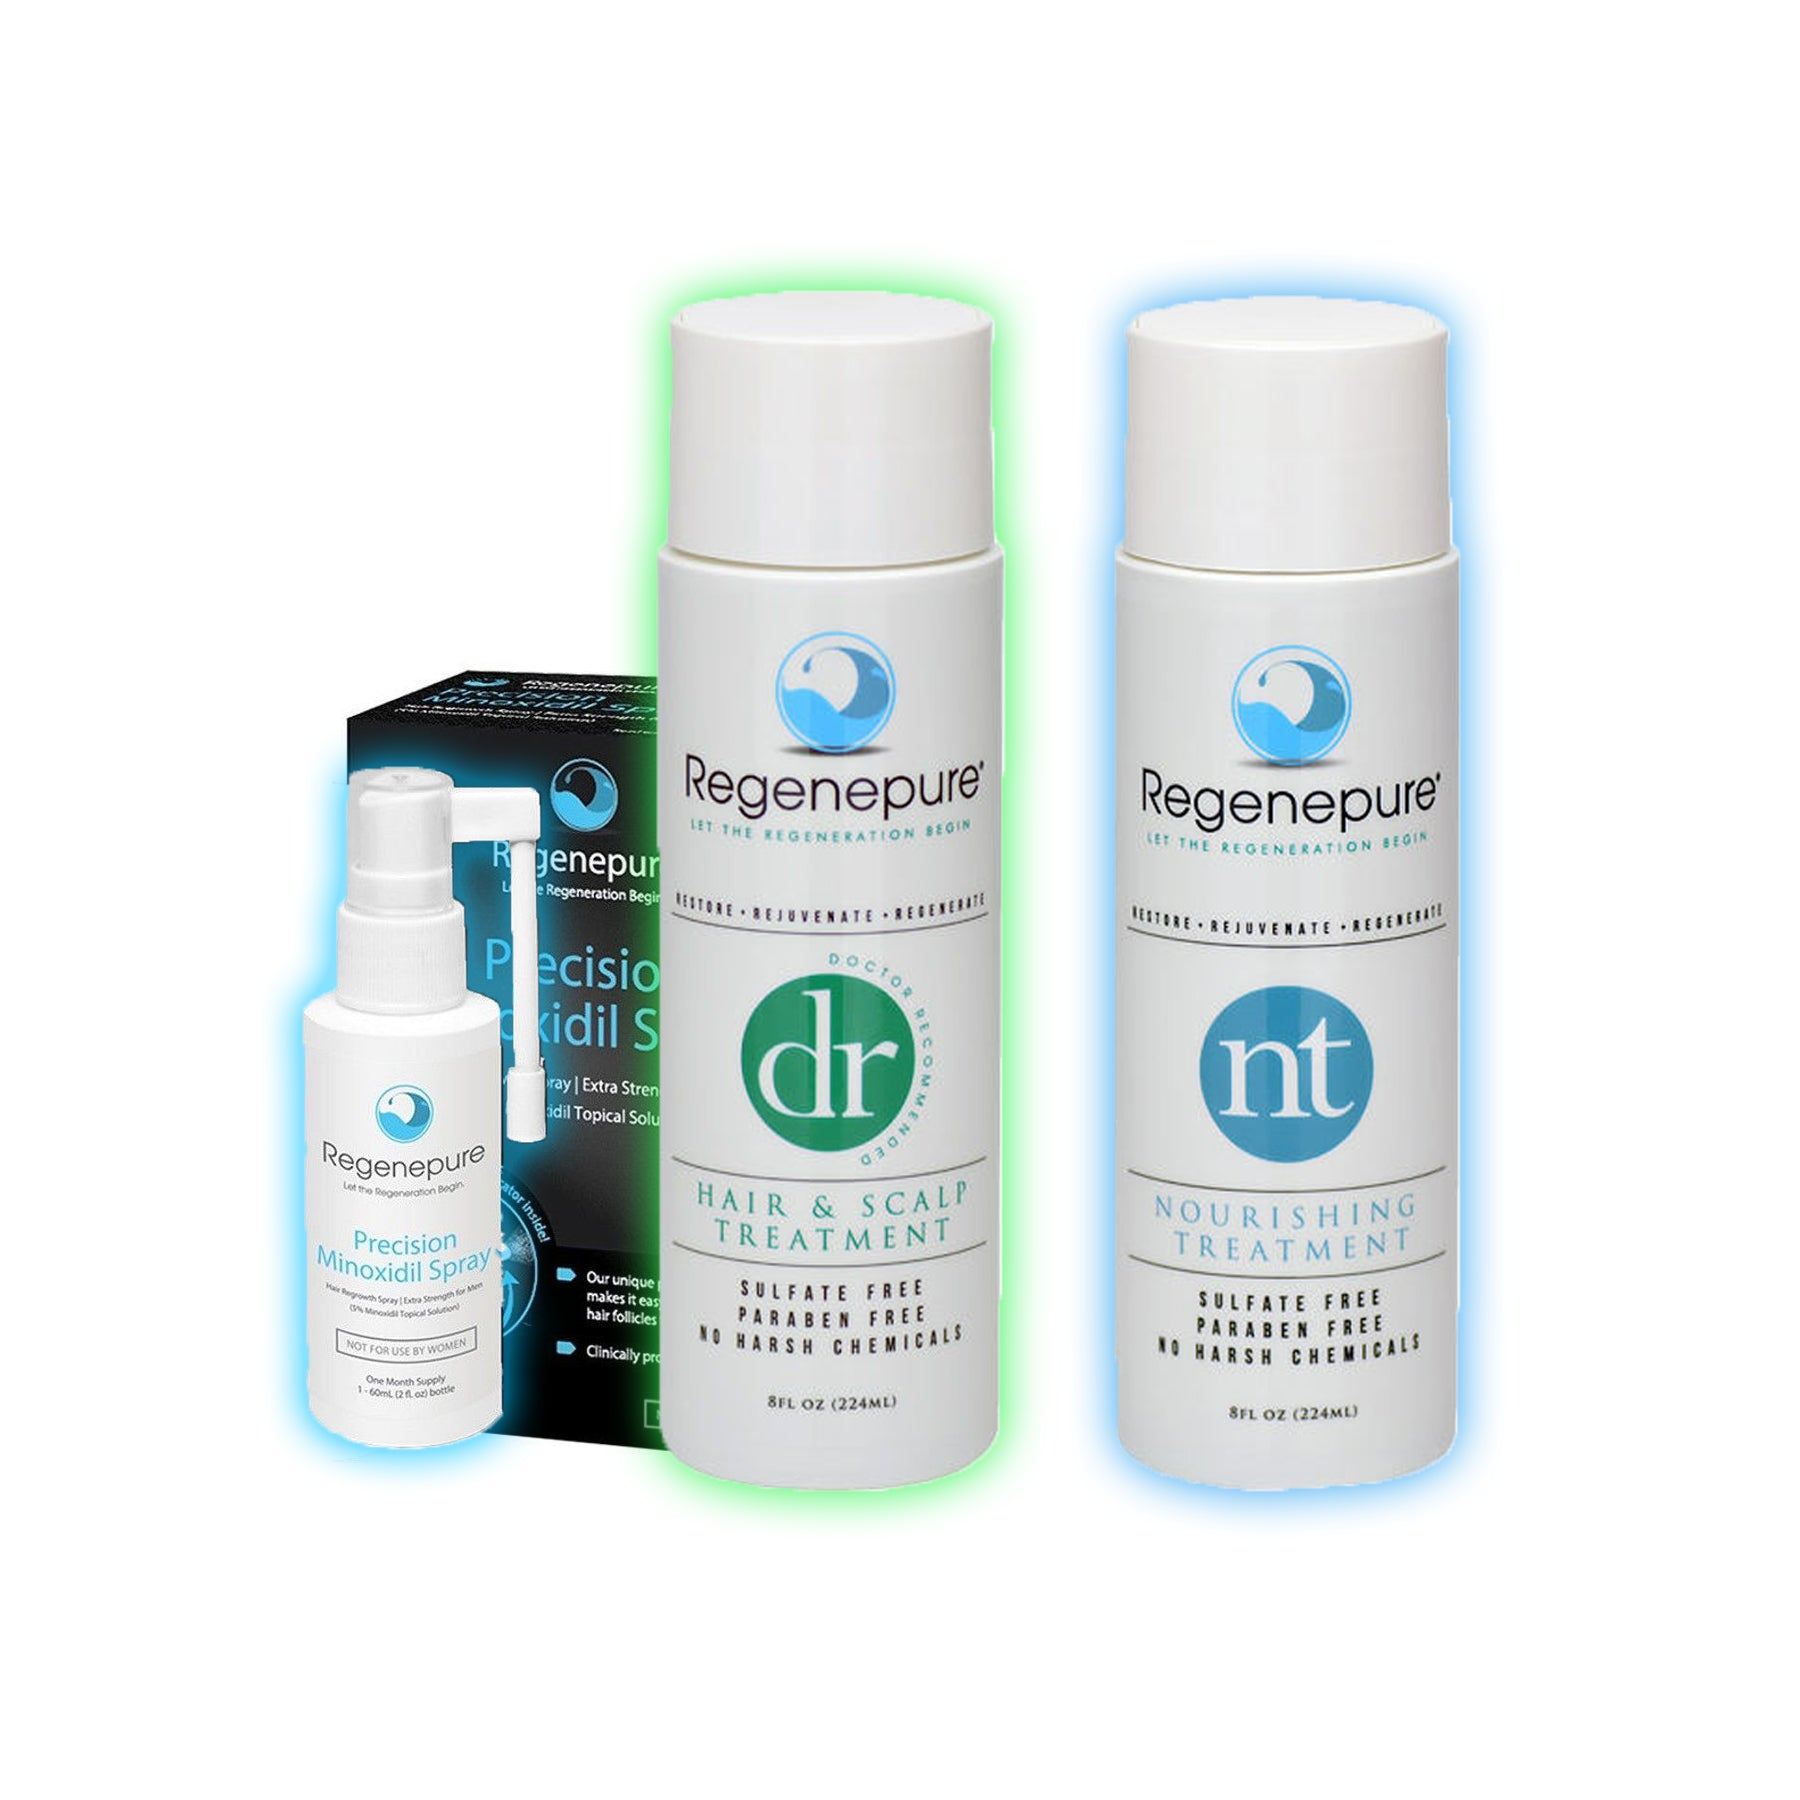 Minoxidil + DR +NT Regenepure Hairloss Treatment System